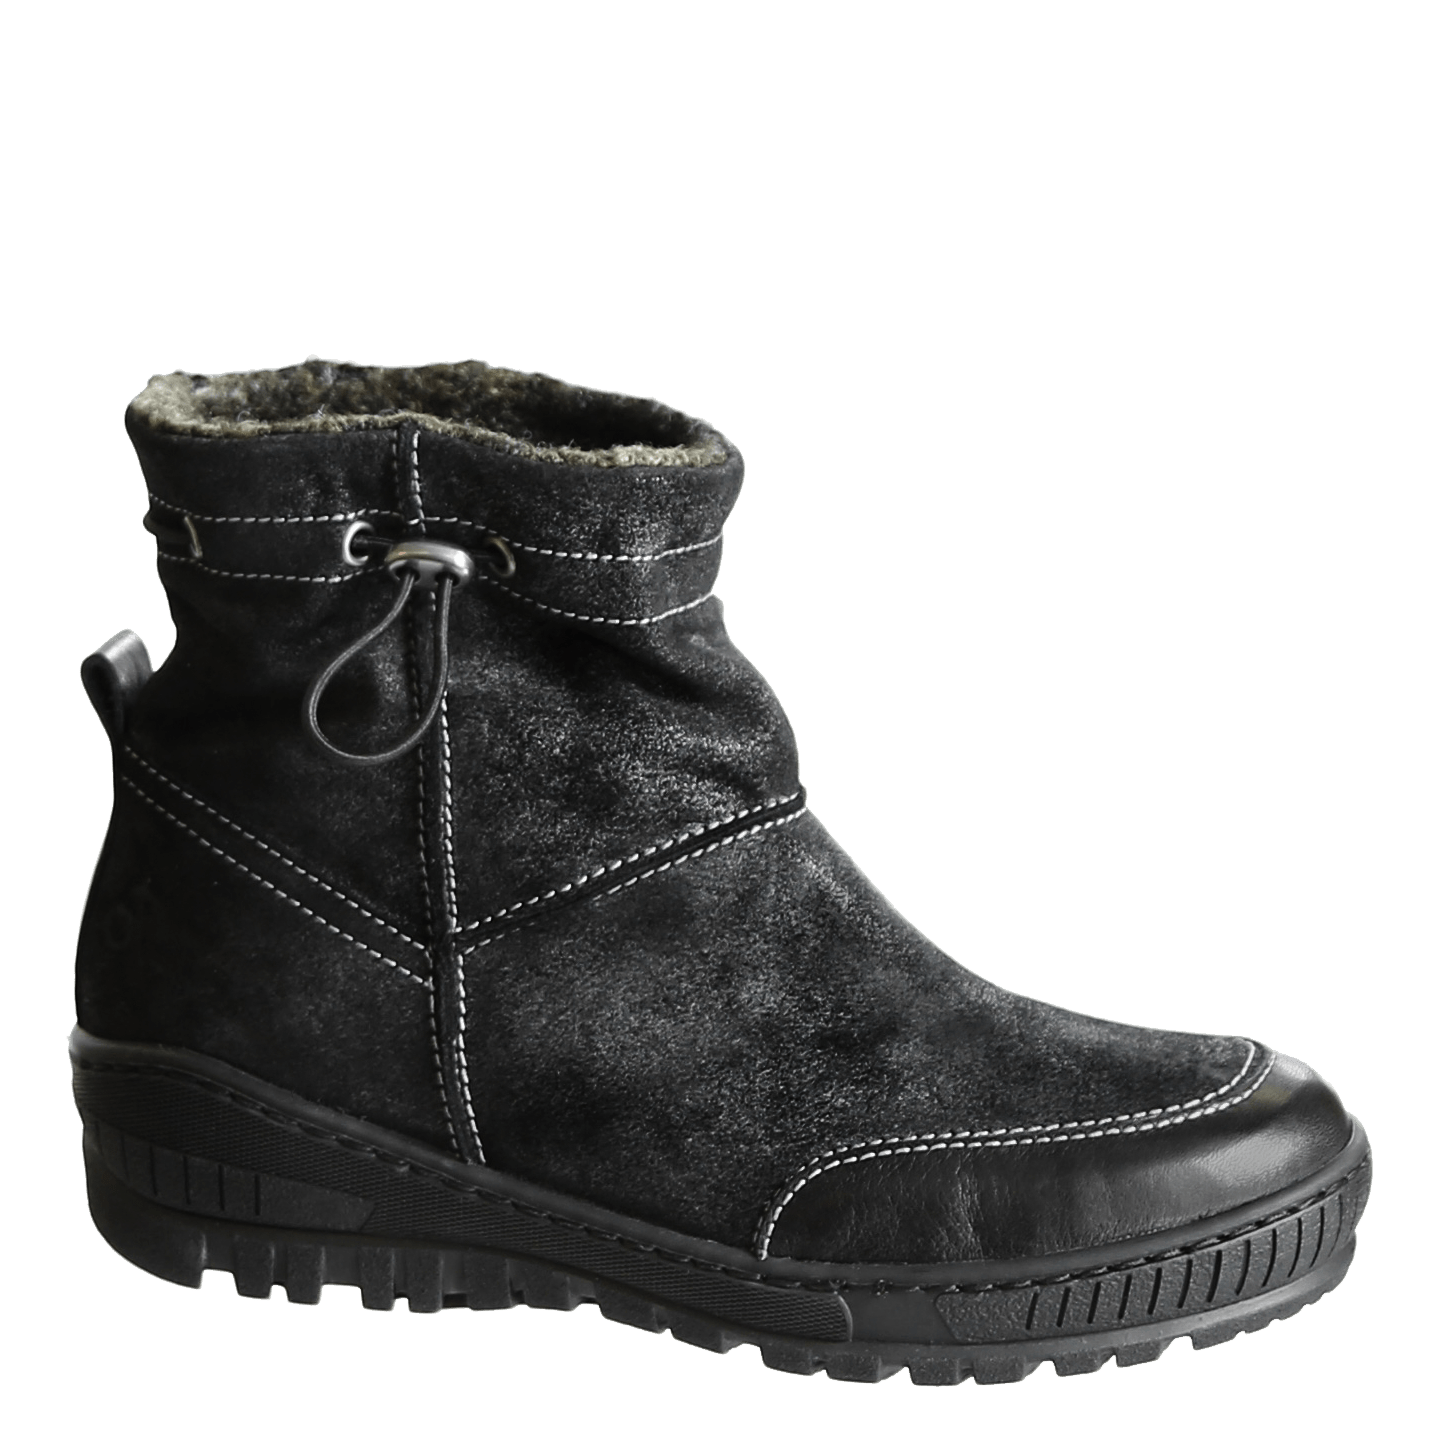 Womens winter boot fanfare in black